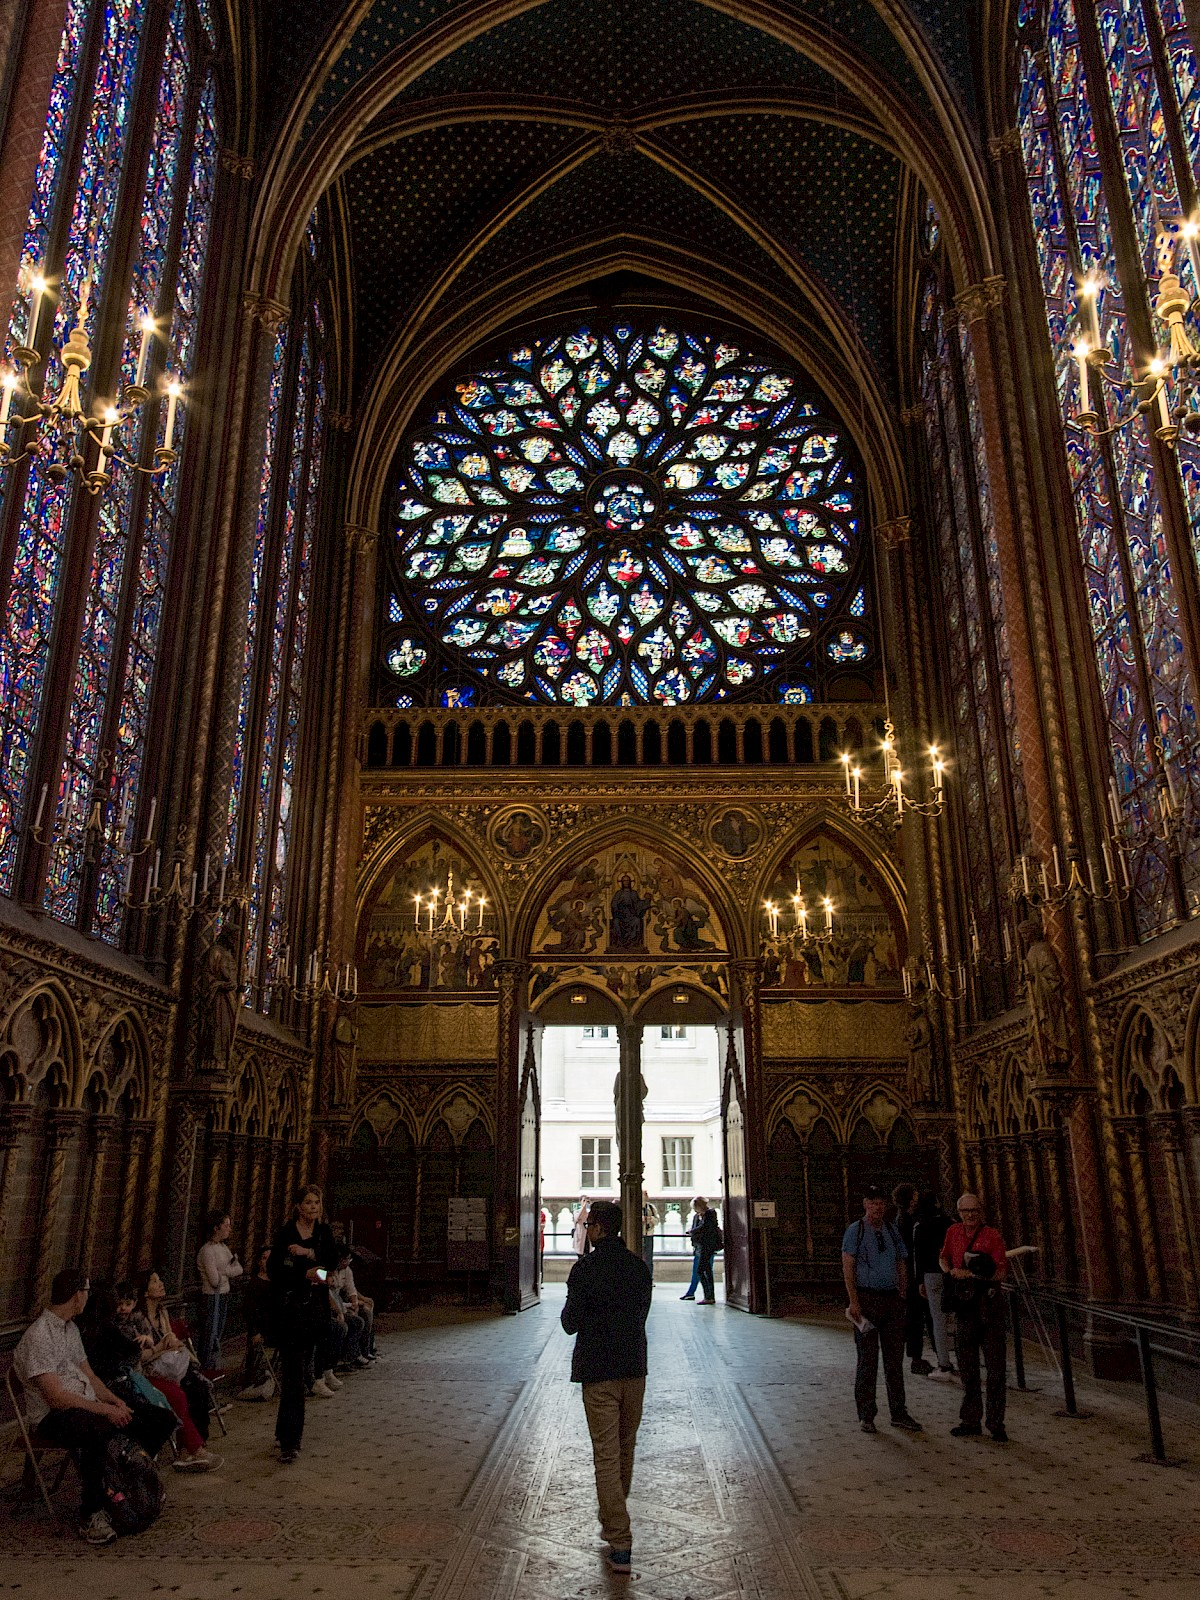 Sainte-Chapelle, additional view